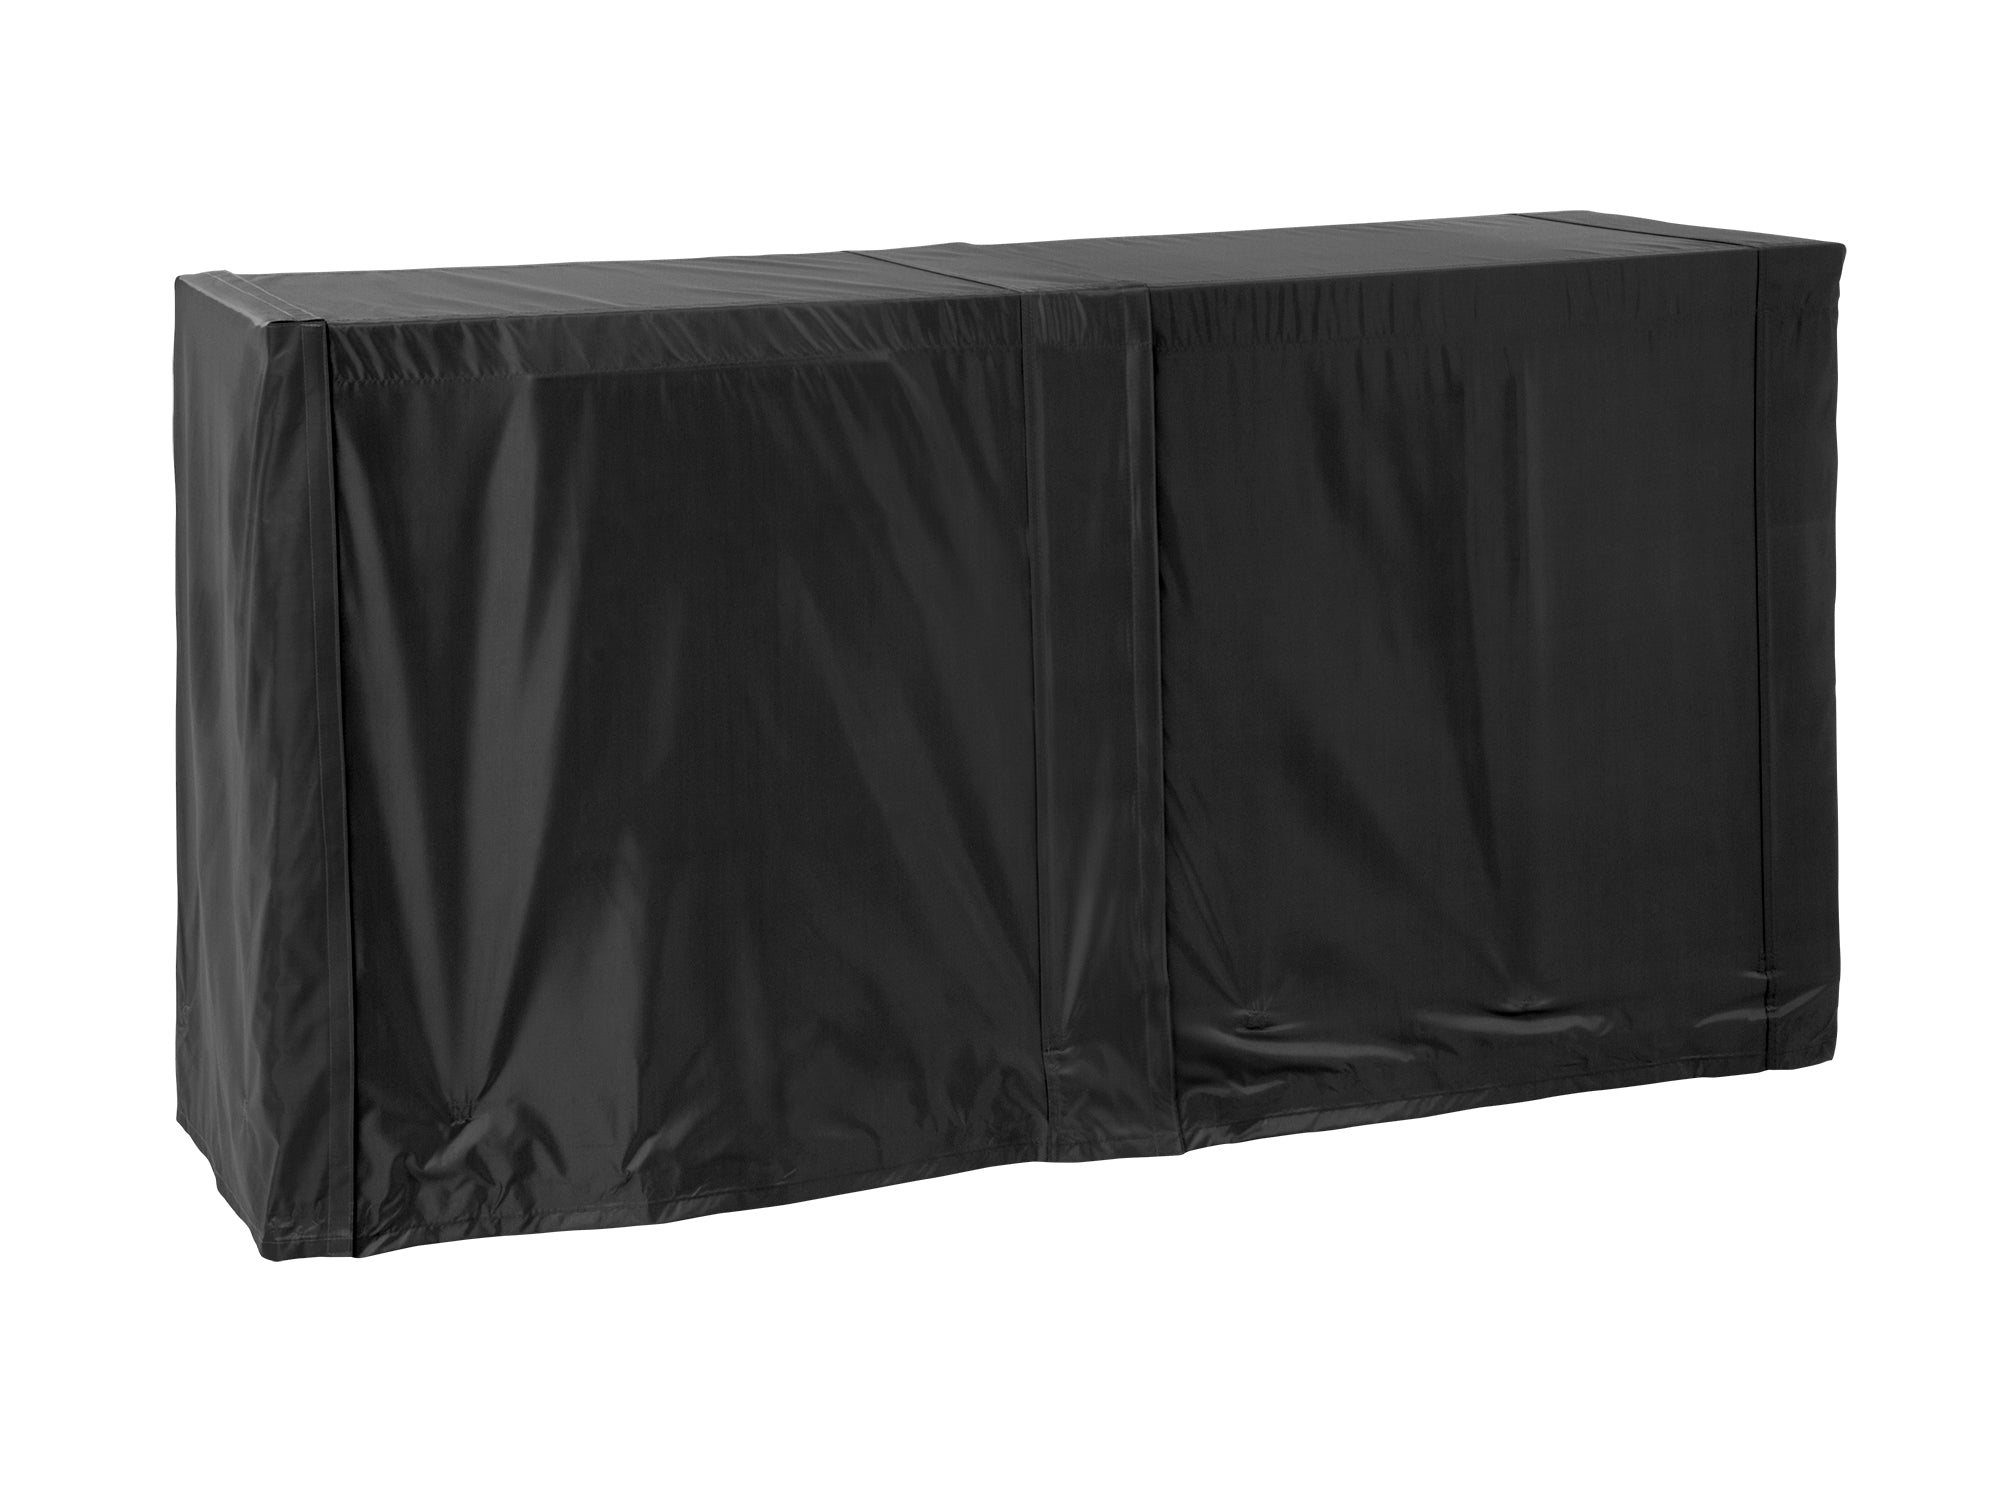 Outdoor Kitchen All-Season Cover Bundle: 32 in. Cover, 88 in. Cover, 90 Degree Corner Cover, Right/Left Side Panel Covers